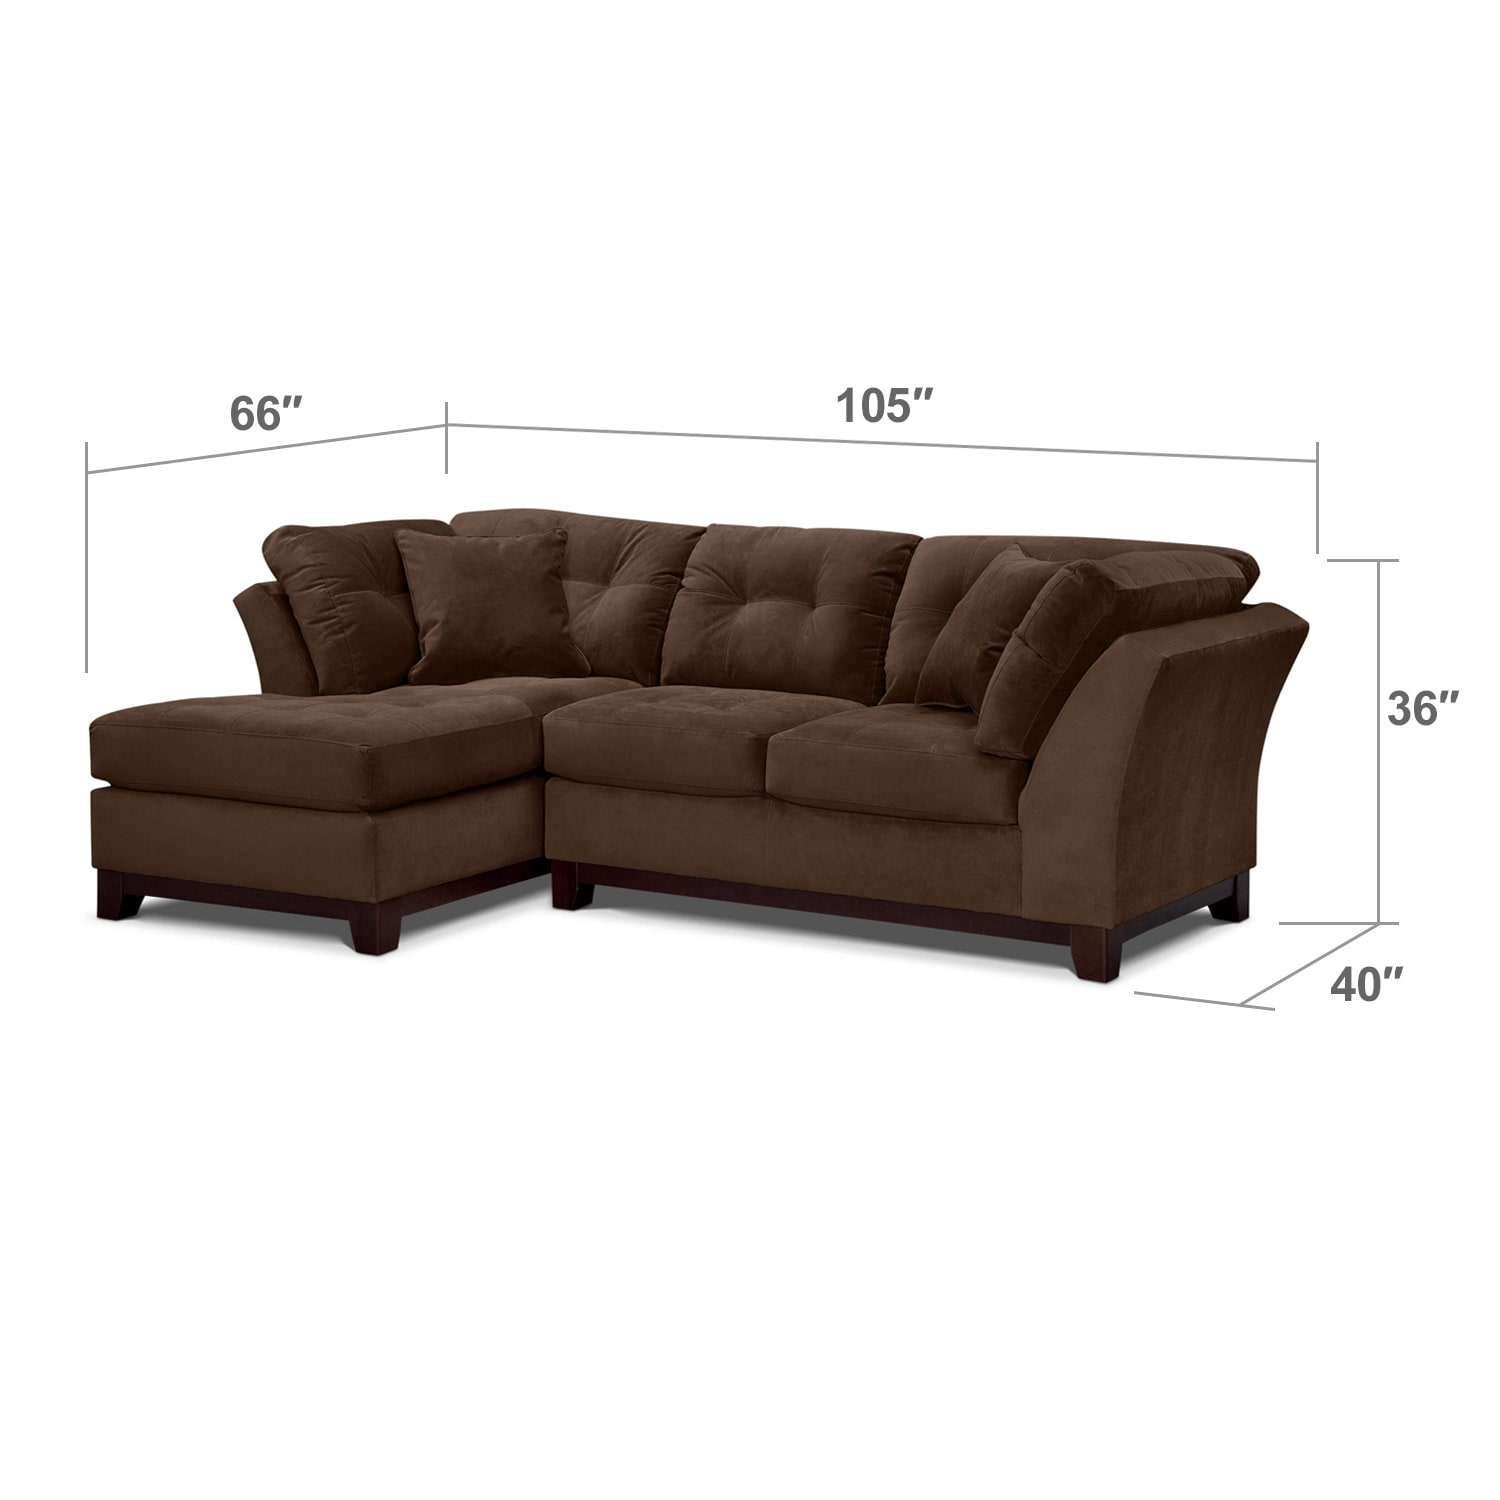 Living Room Furniture - Solace Chocolate II 2 Pc. Sectional (Alternate)